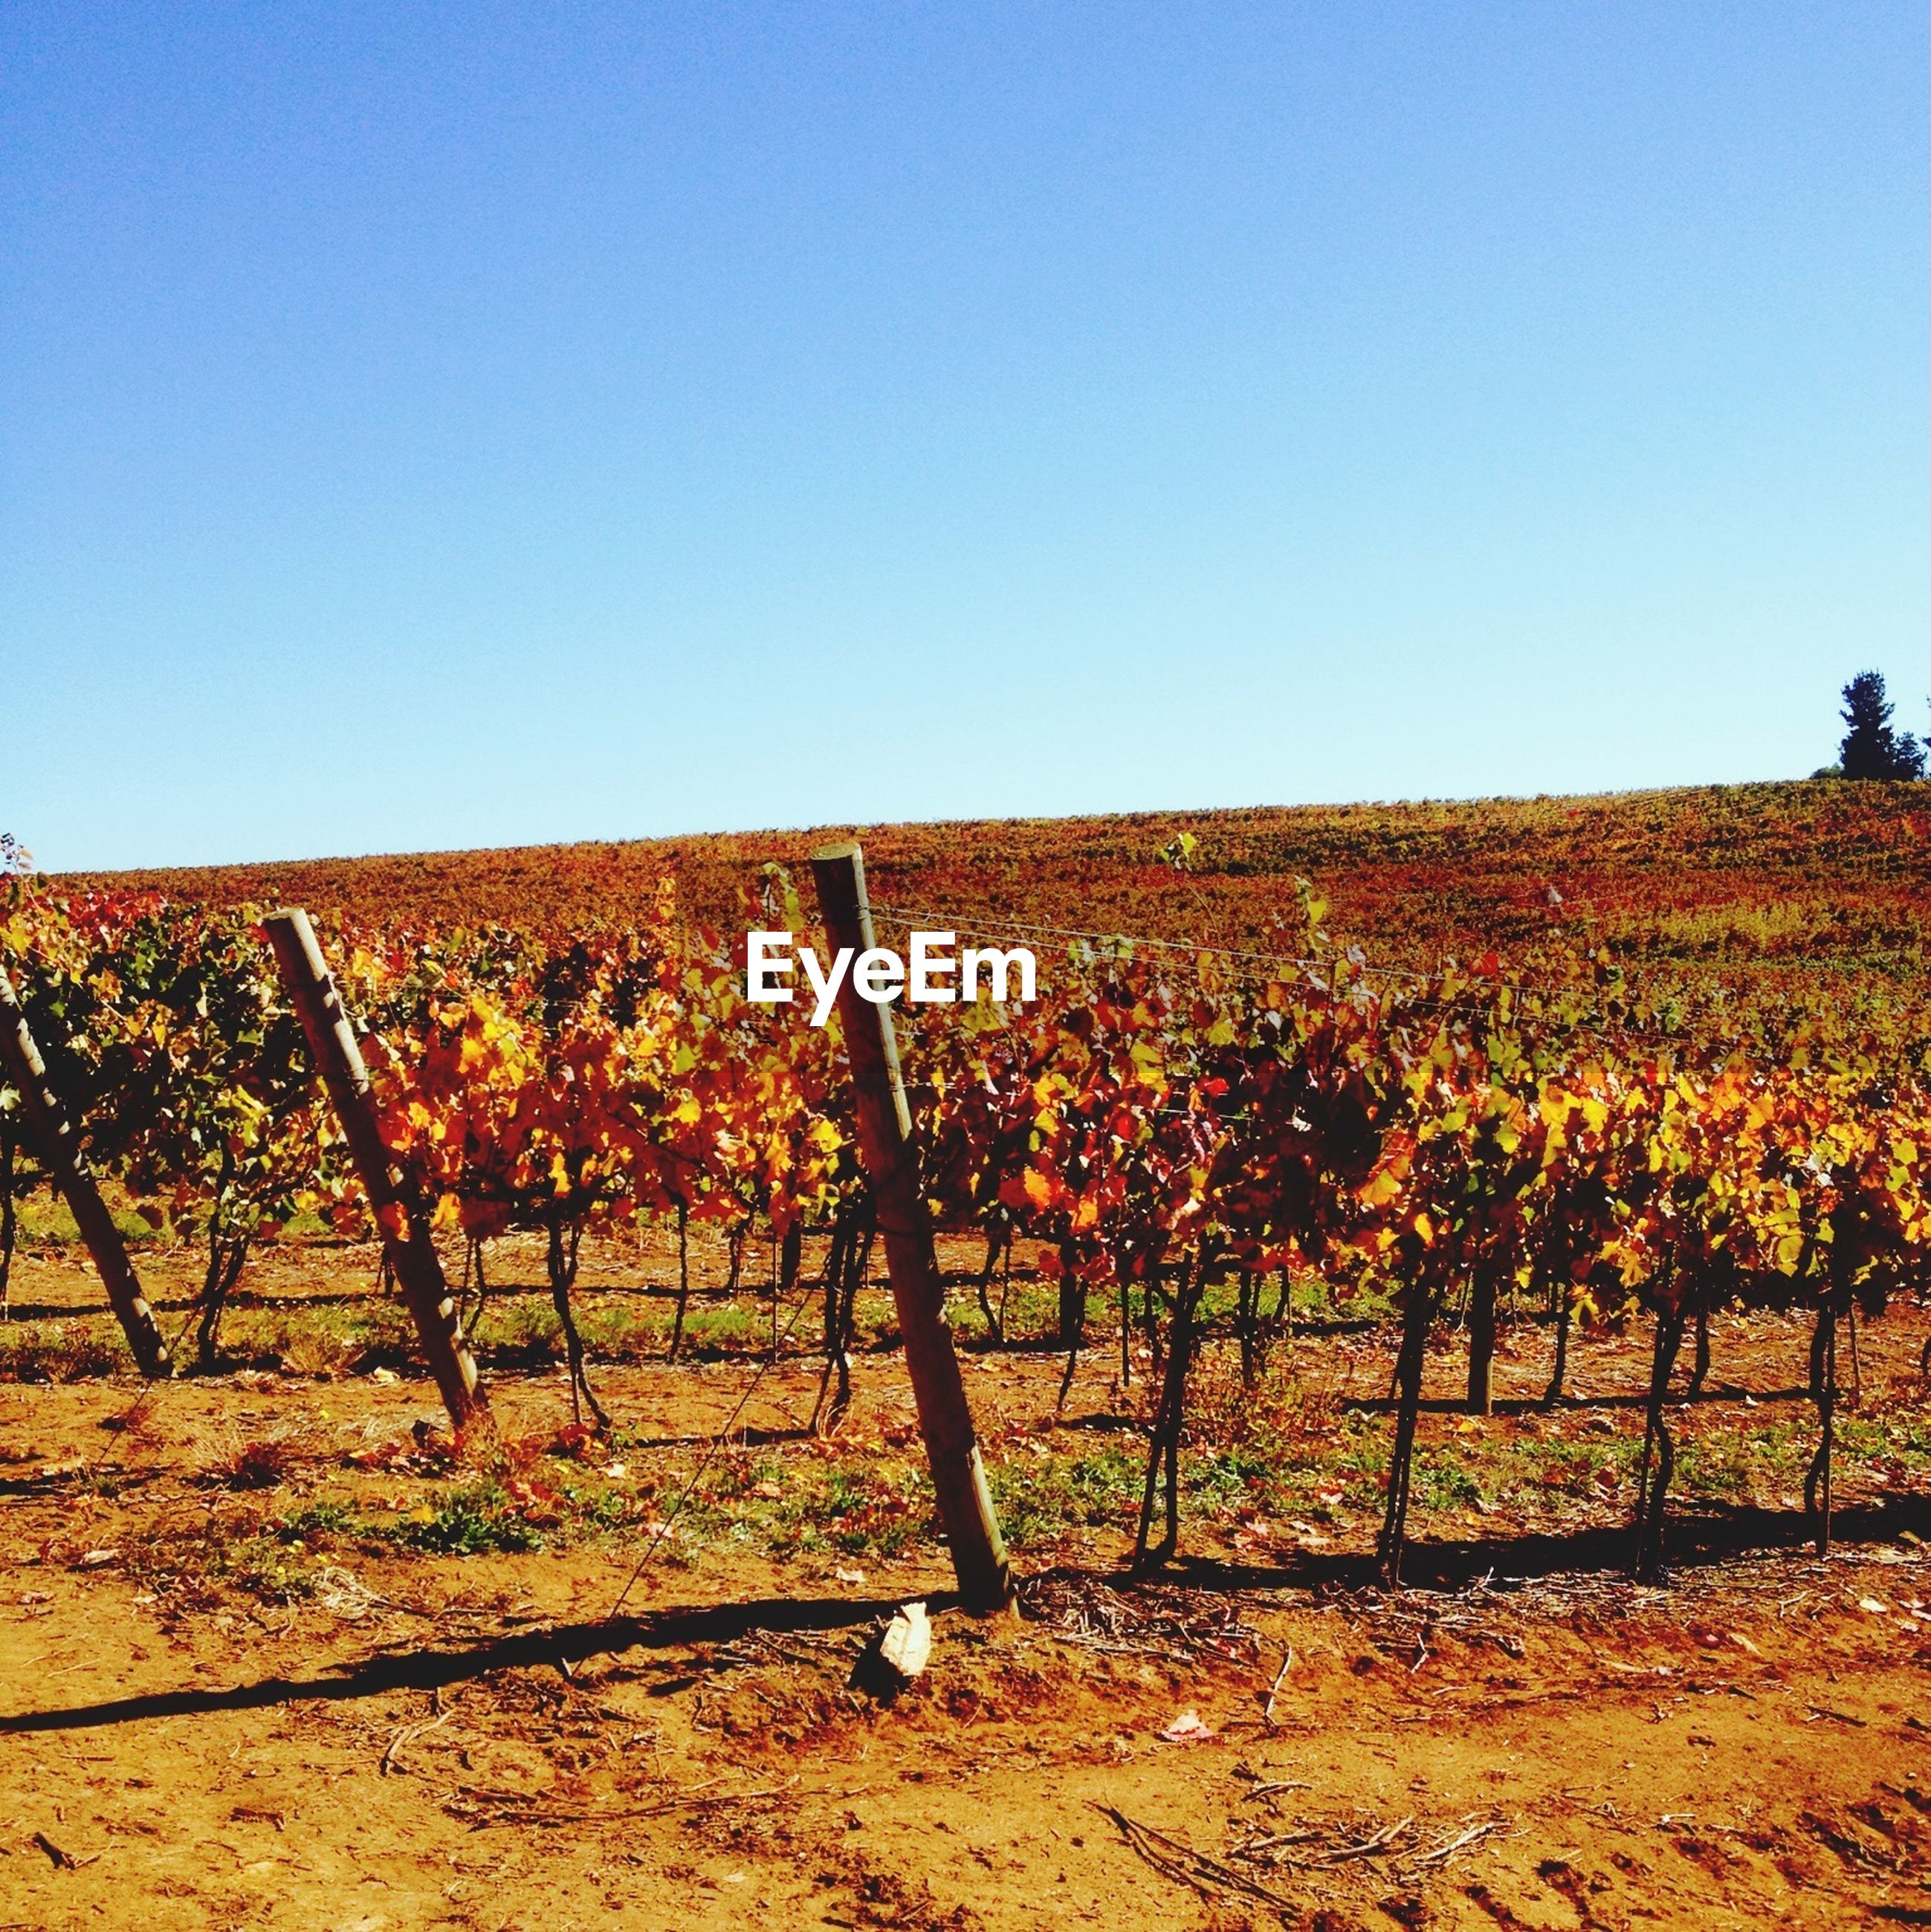 Tranquil view of vineyard against clear blue sky